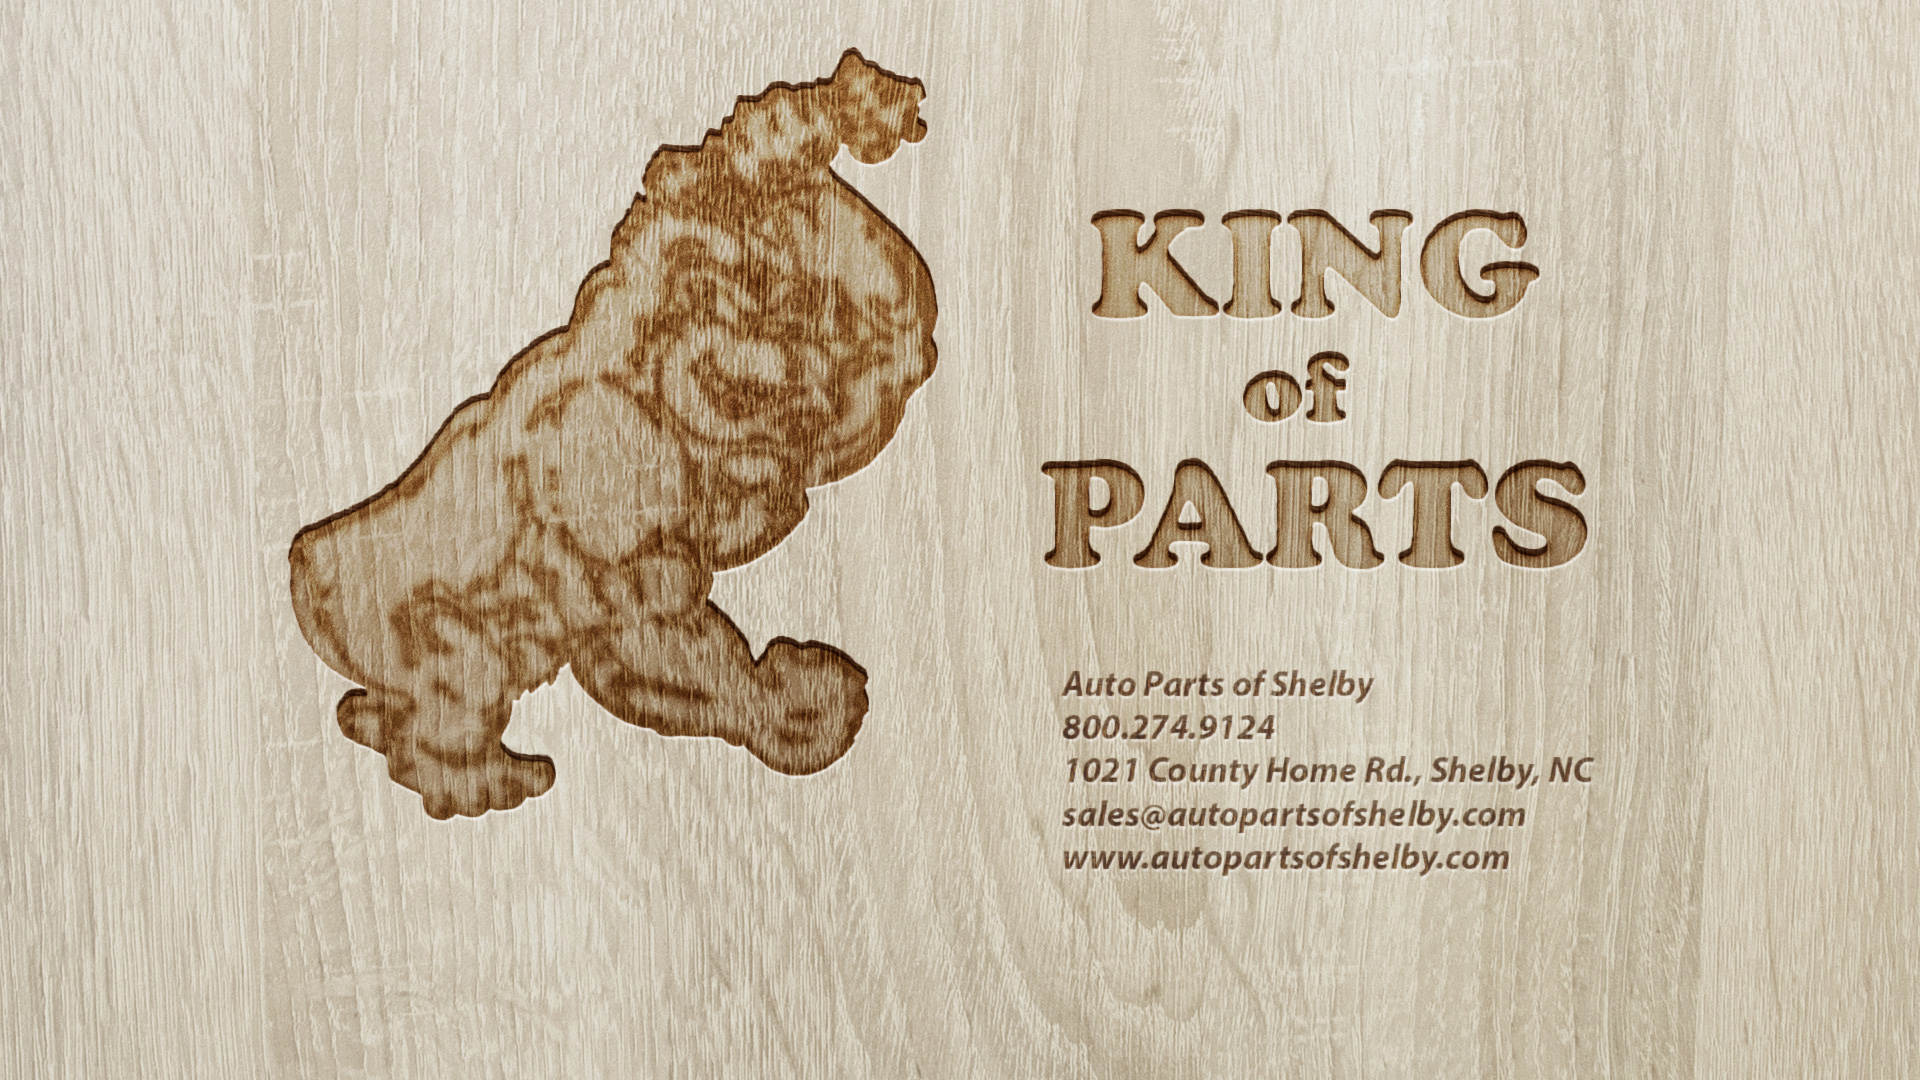 Auto Parts of Shelby Engraved Wood Desktop Wallpaper 1920 x 1080